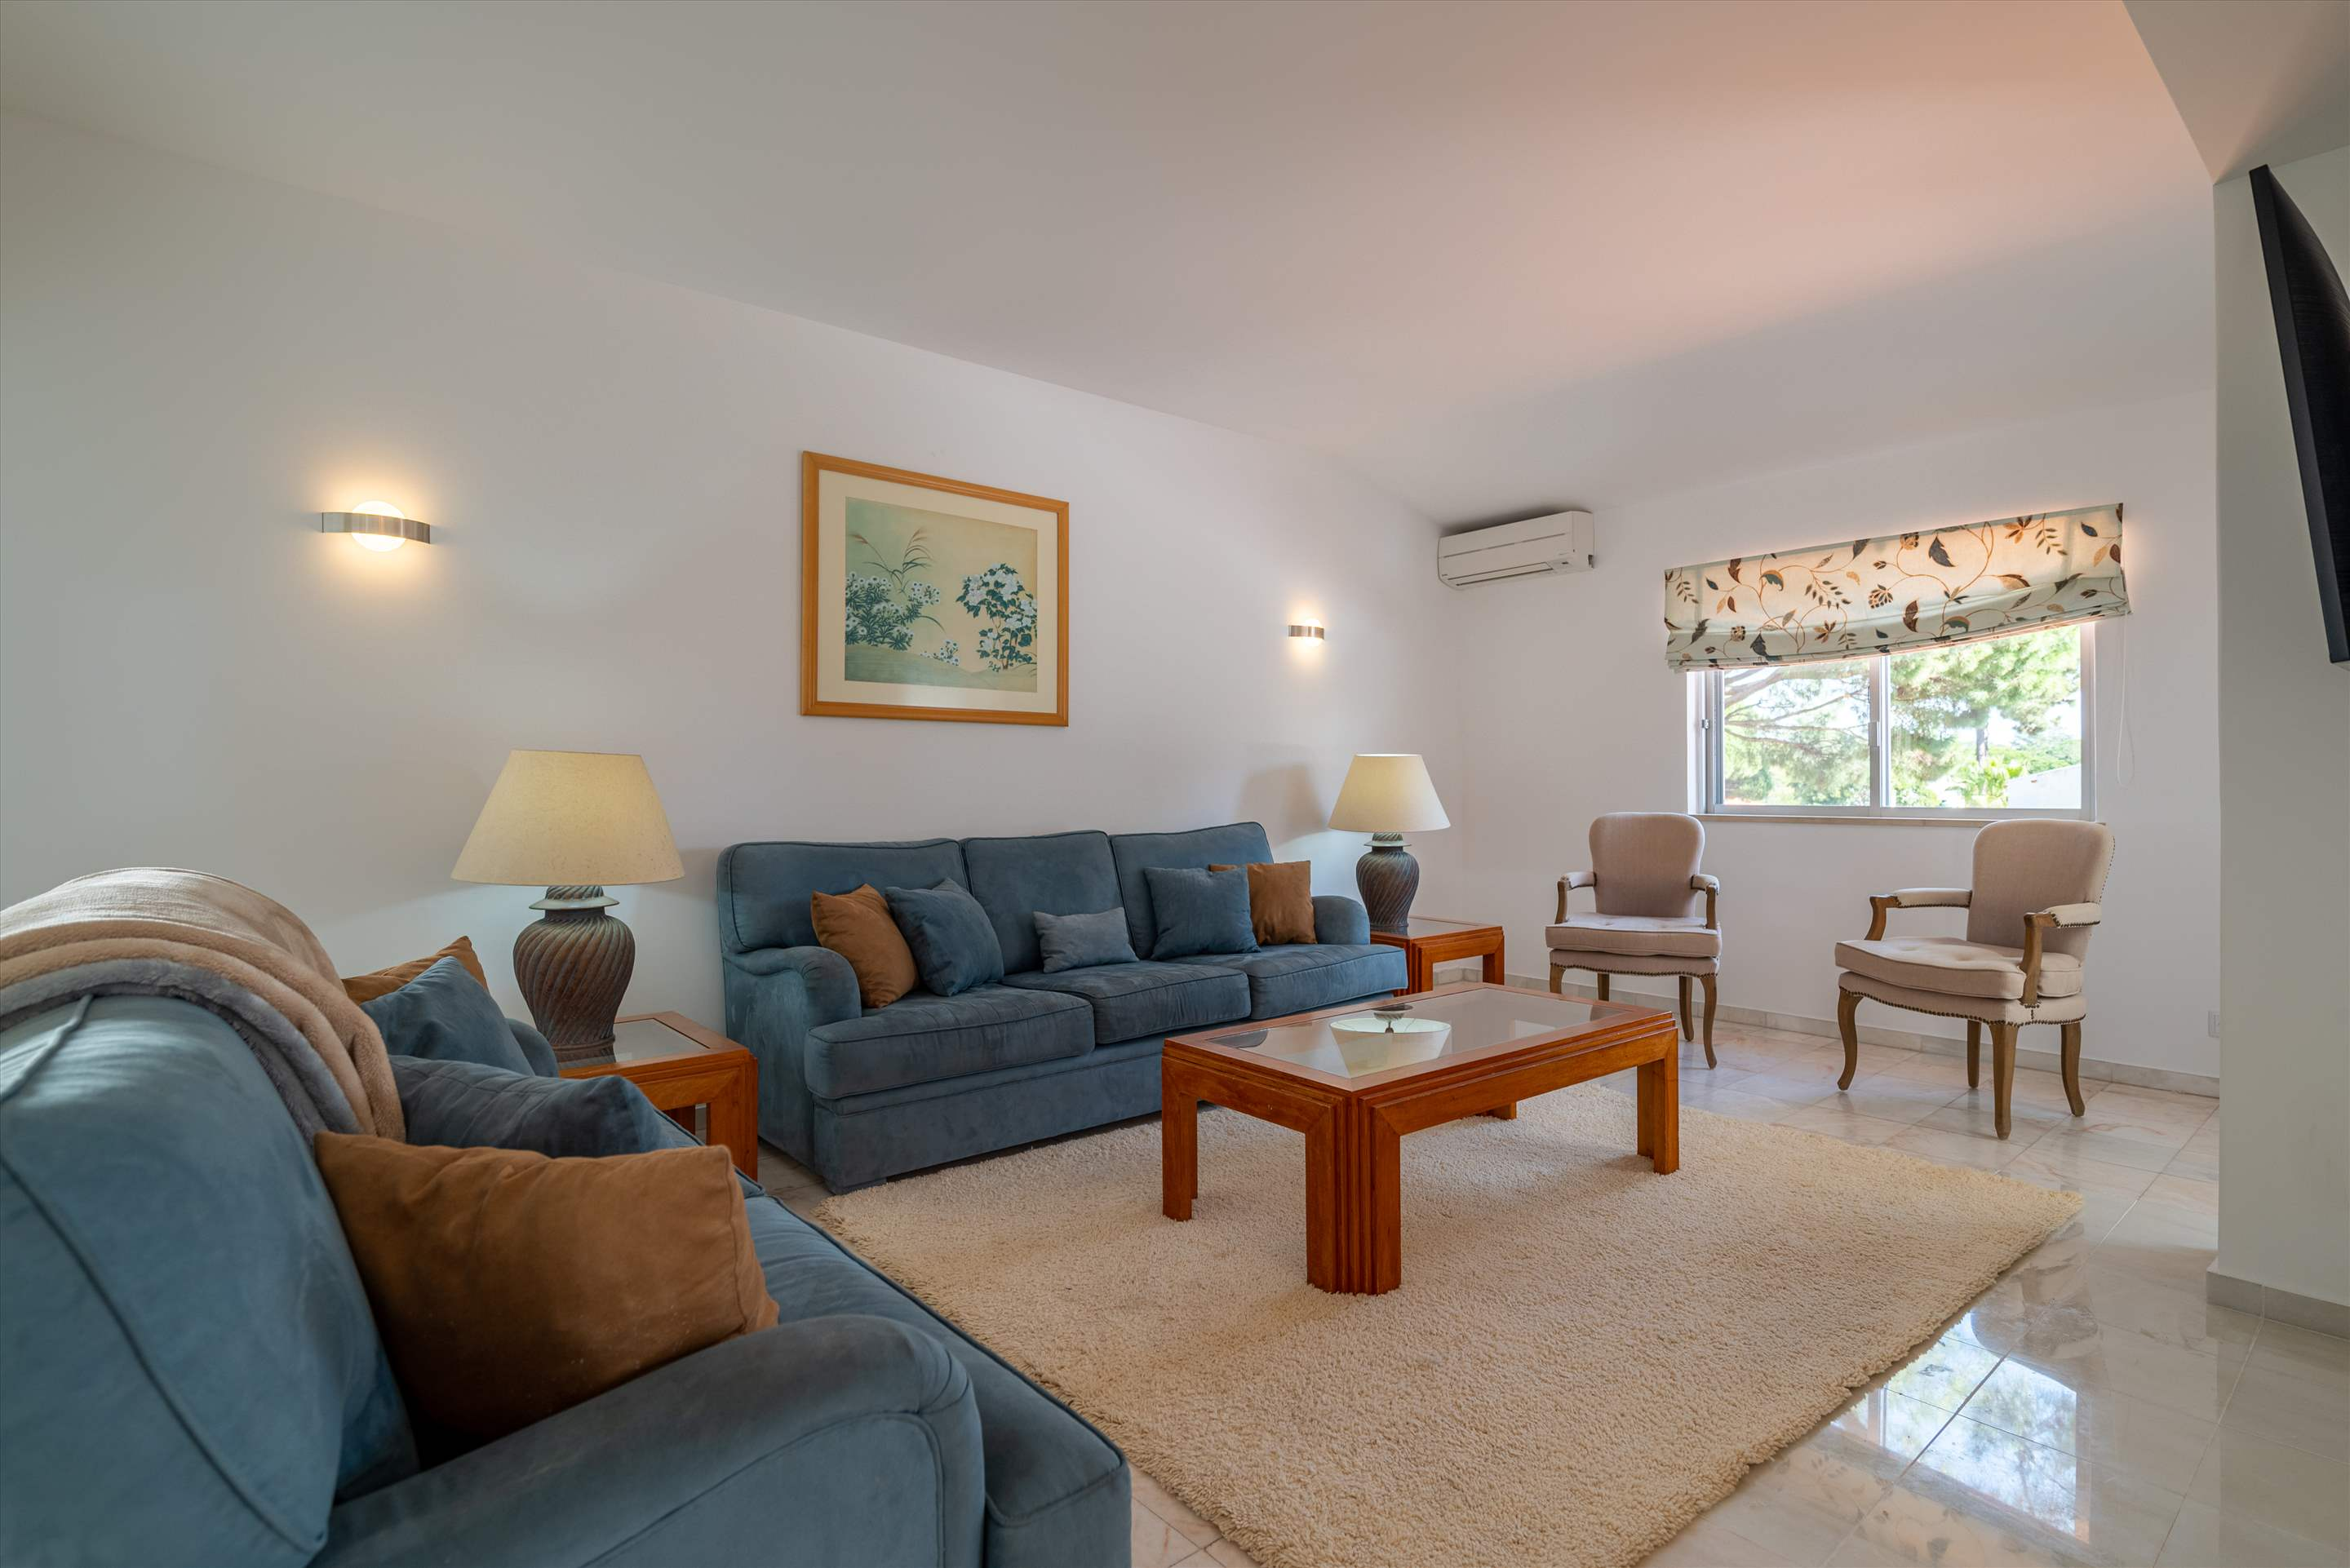 Casa Bella, 3 bedroom apartment in Vale do Lobo, Algarve Photo #4